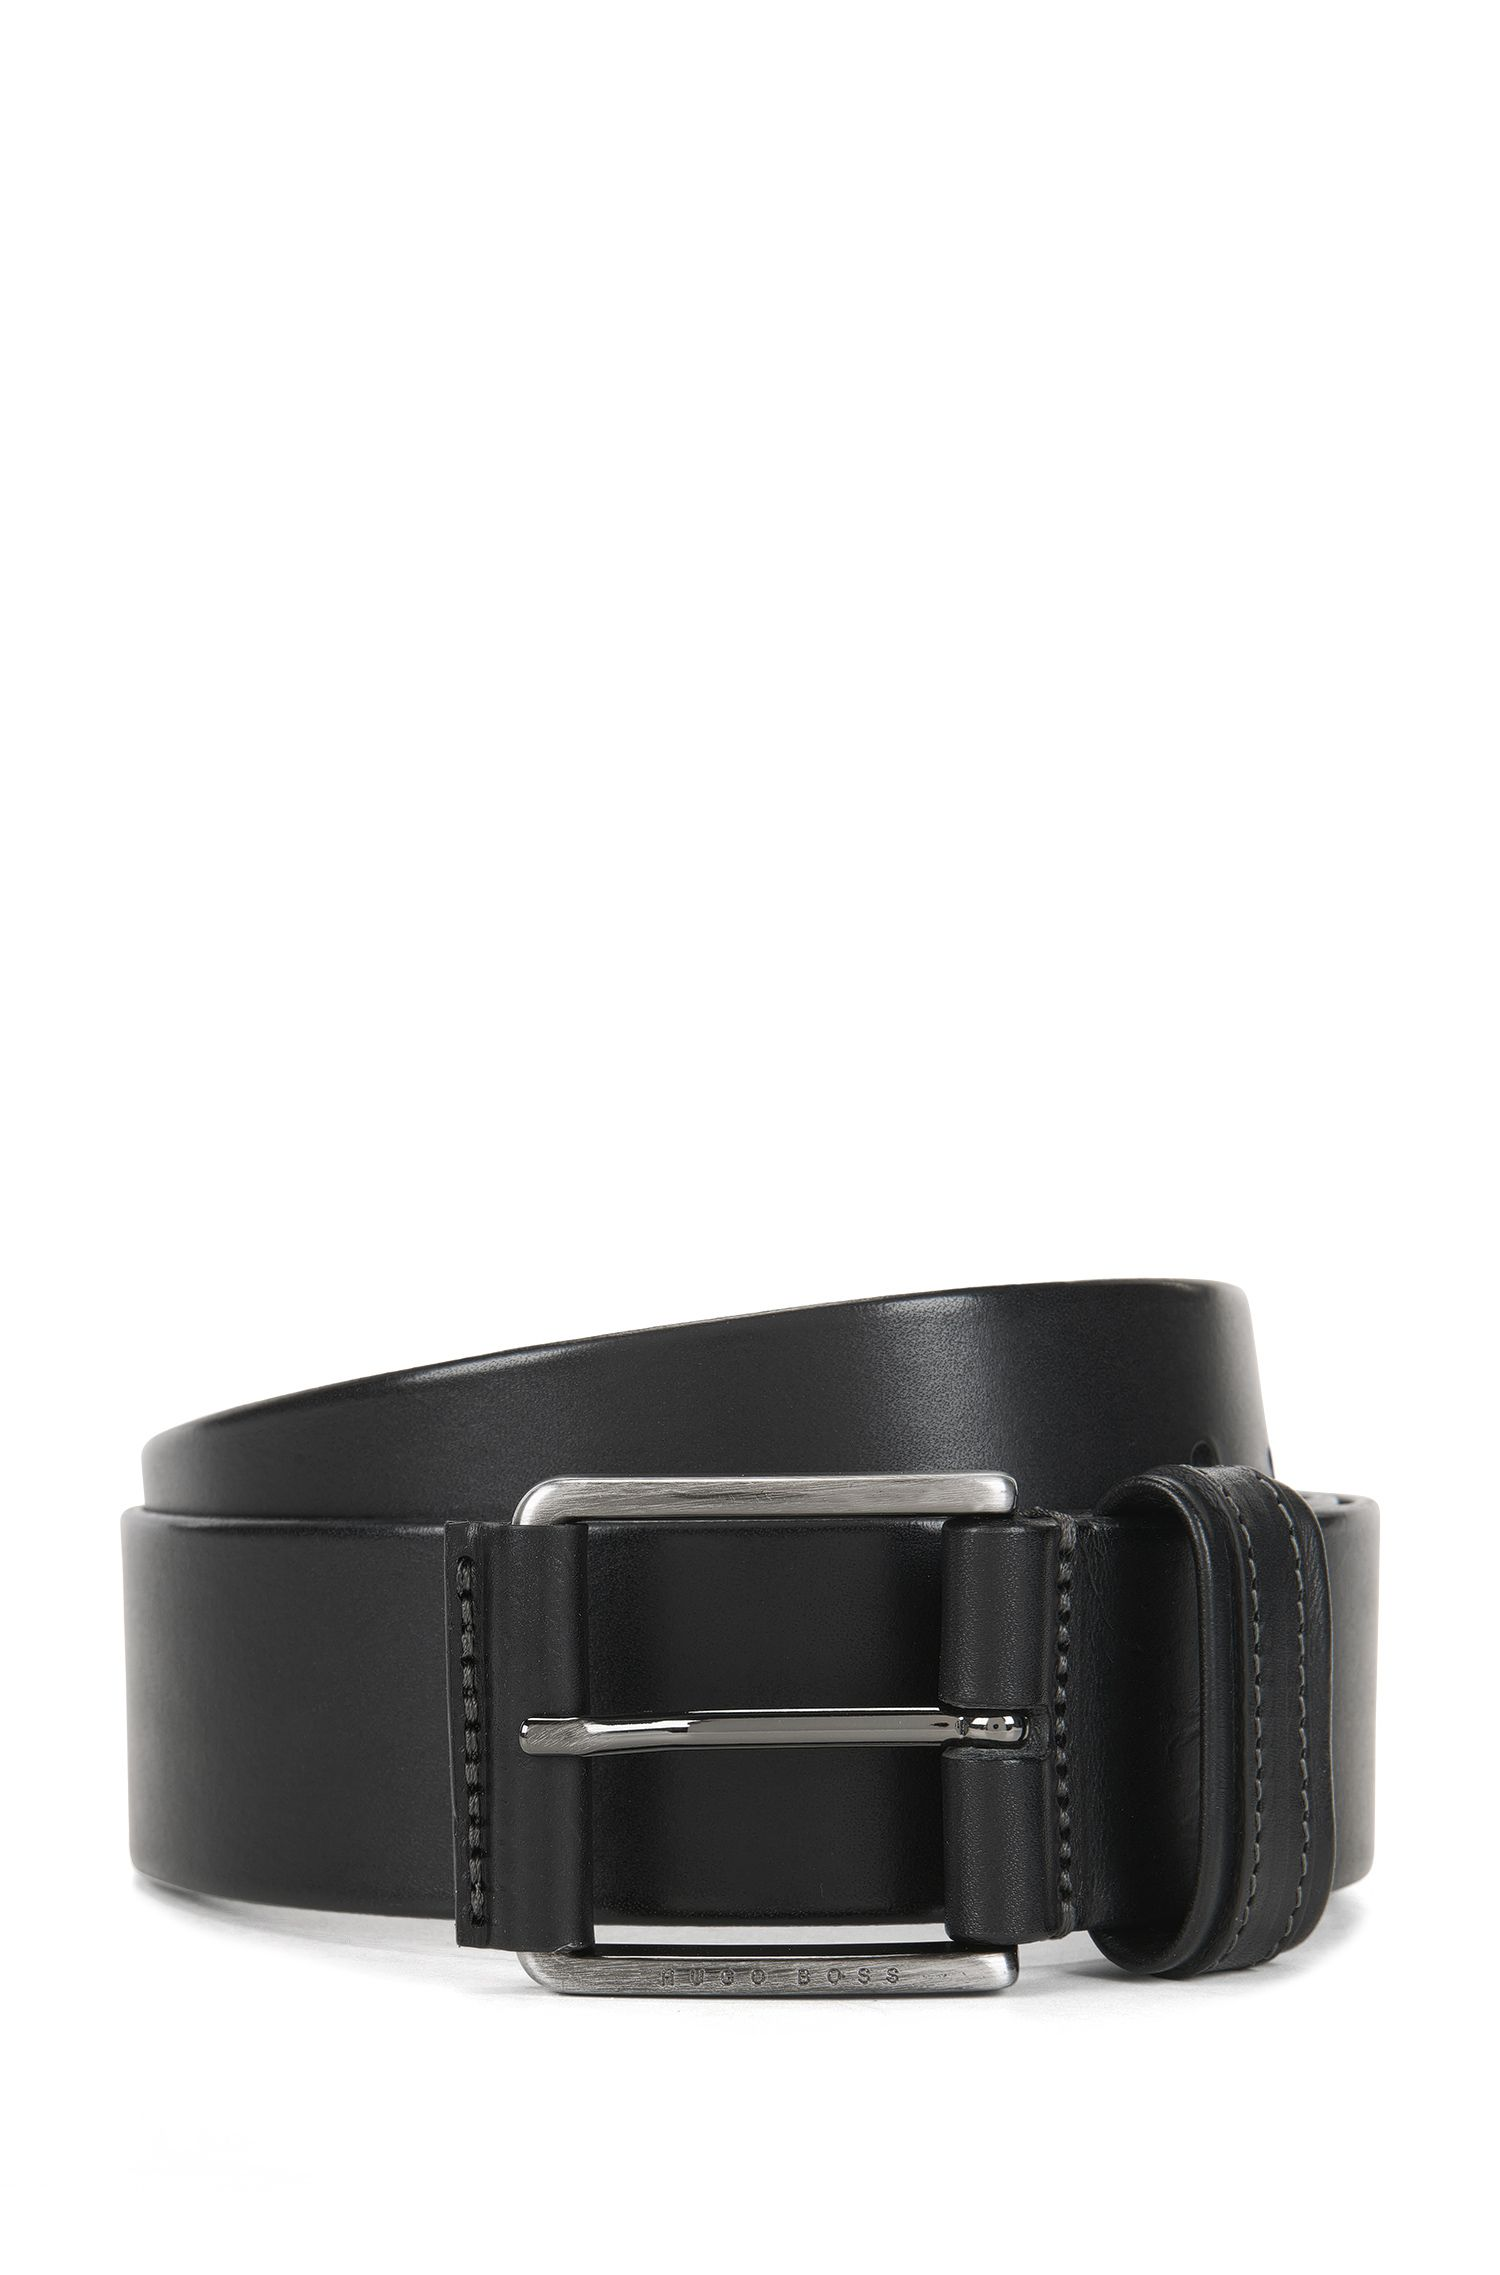 Leather belt with two-tone finish